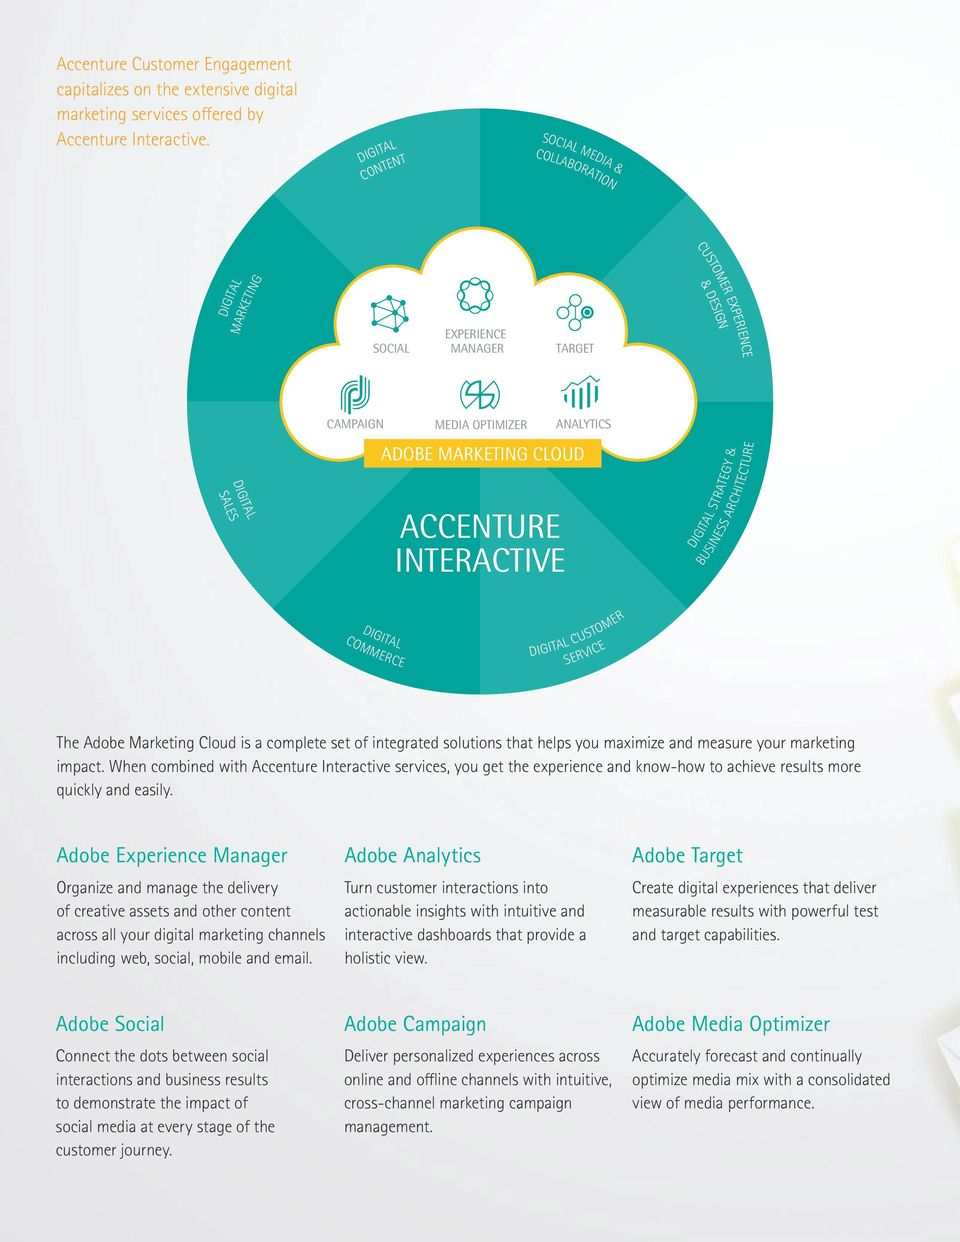 ADOBE MARKETING CLOUD DIGITAL STRATEGY & BUSINESS ARCHITECTURE DIGITAL COMMERCE DIGITAL CUSTOMER SERVICE The Adobe Marketing Cloud is a complete set of integrated solutions that helps you maximize